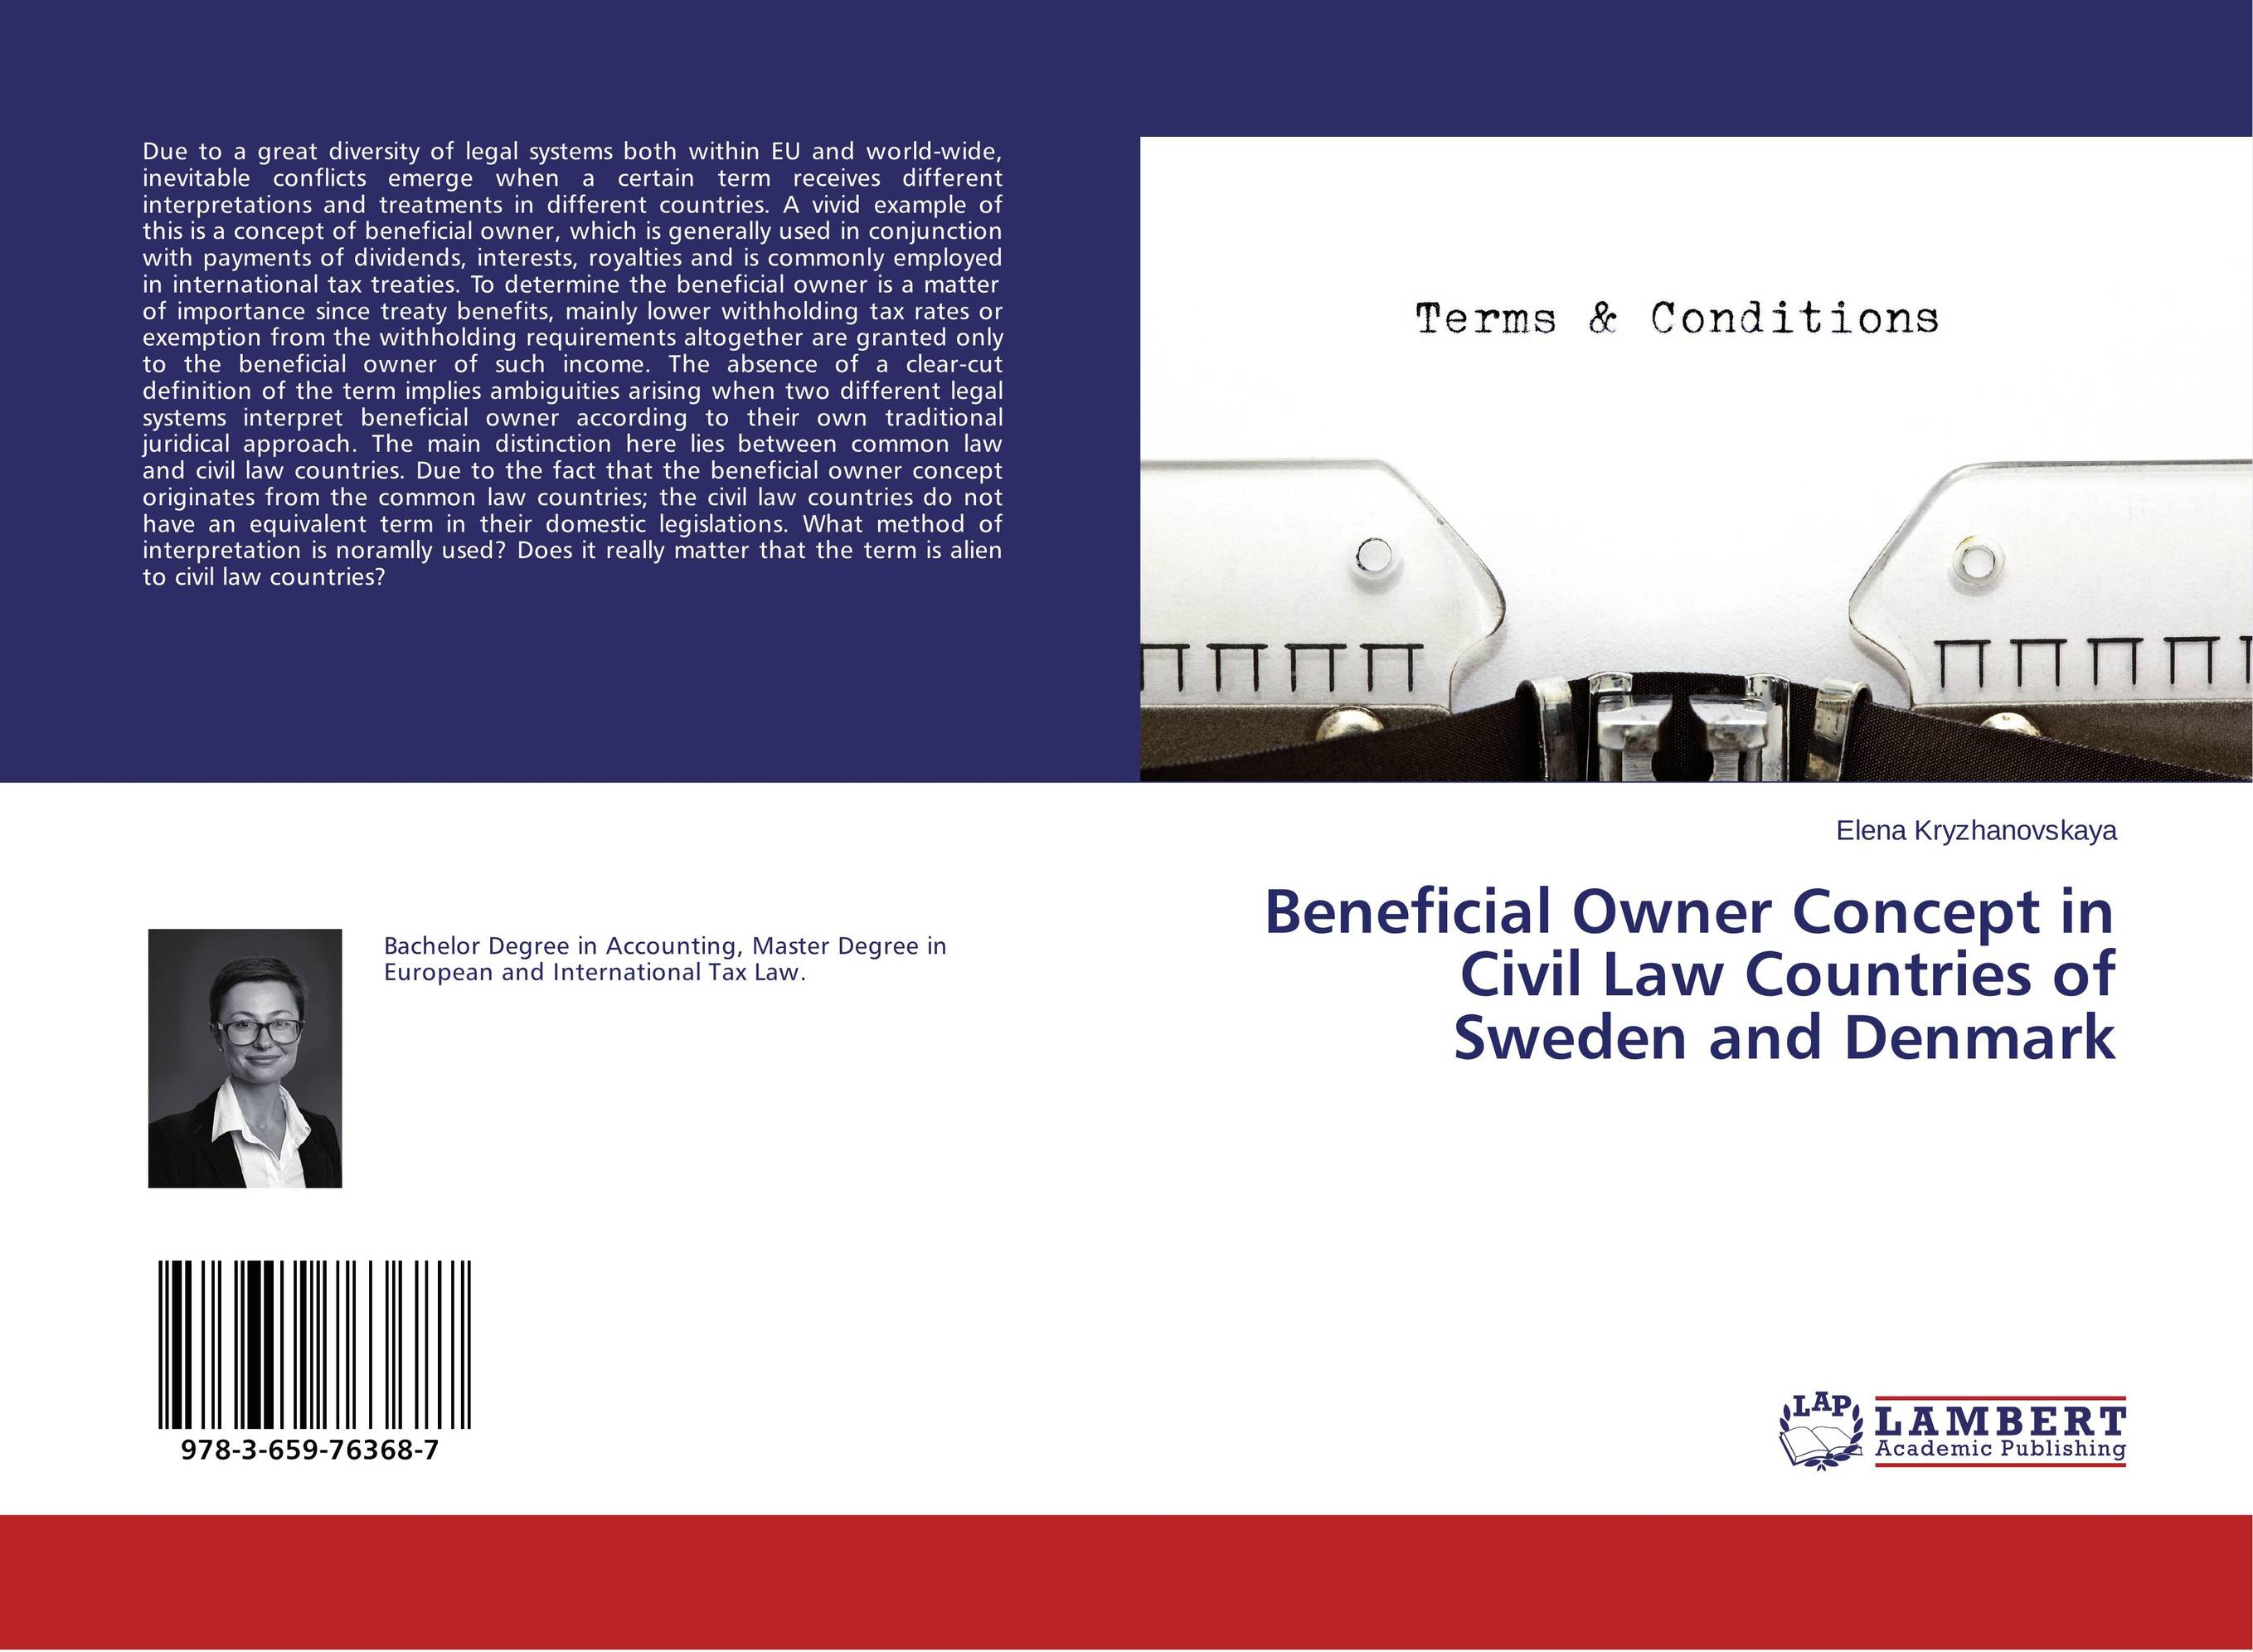 Beneficial Owner Concept in Civil Law Countries of Sweden and Denmark common mental disorders in long term sickness absence